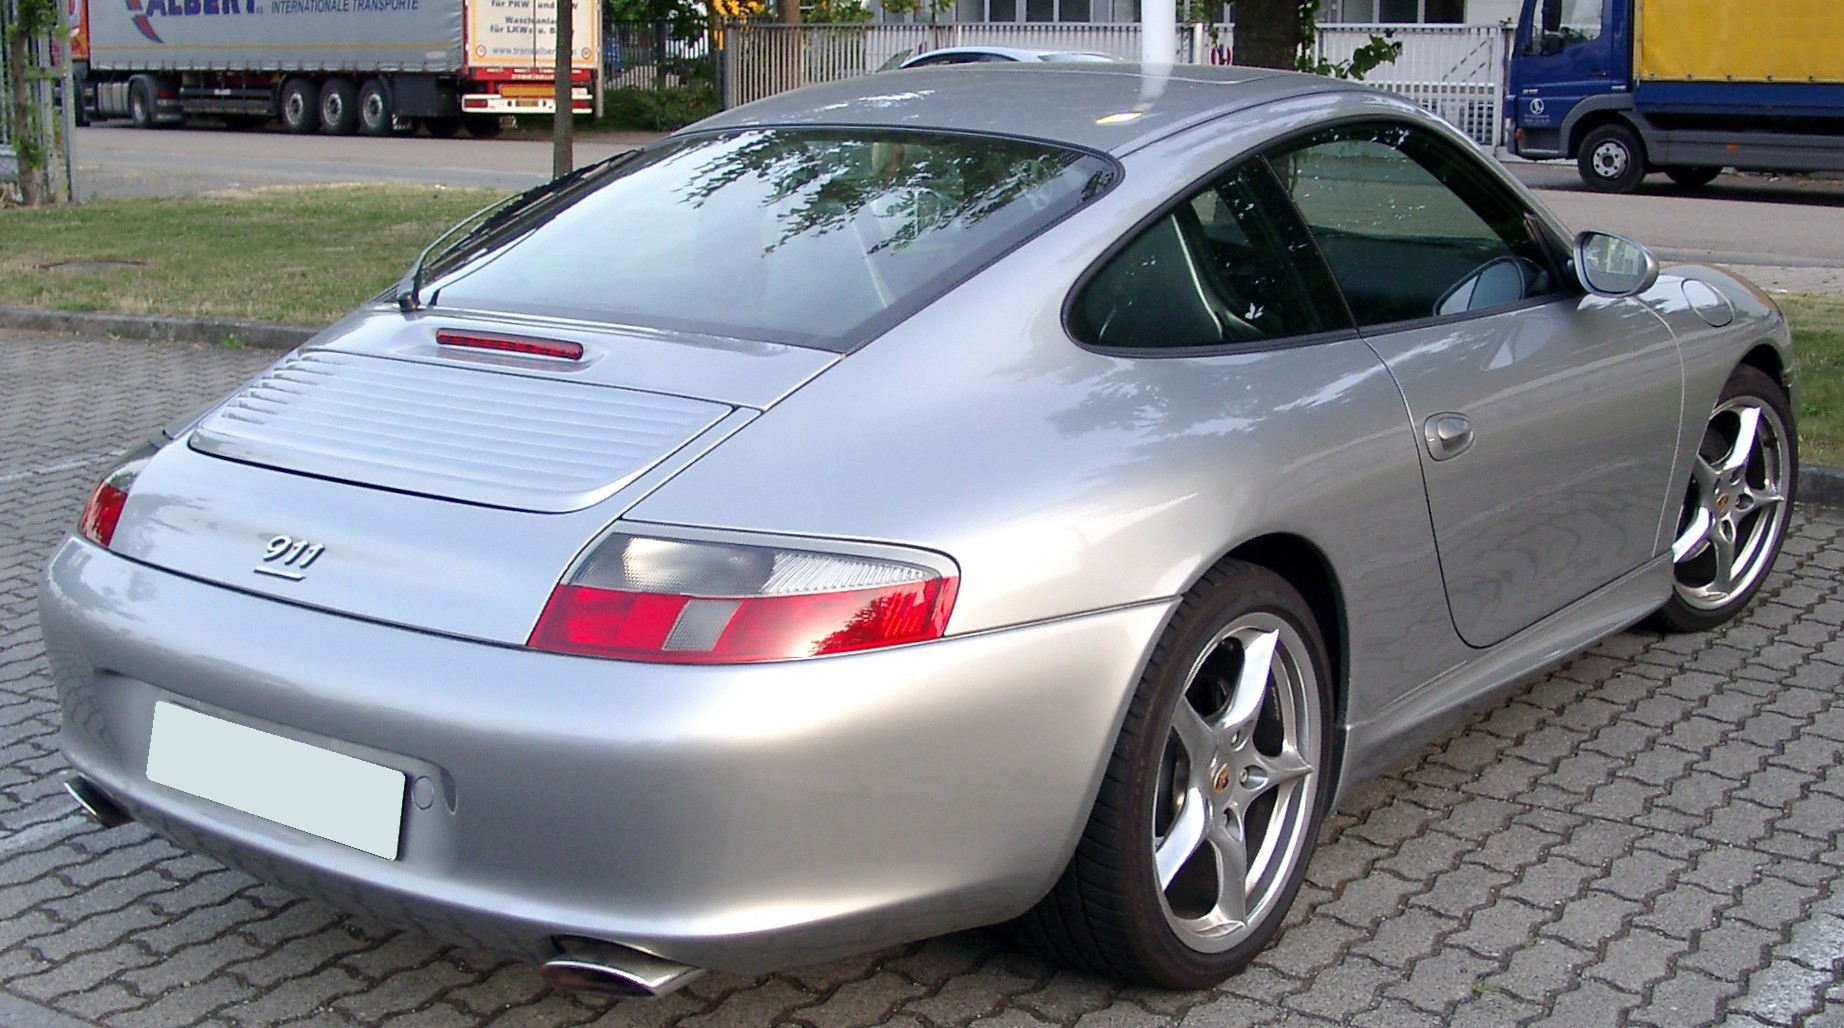 File Porsche 996 Rear 20080624 Jpg Wikimedia Commons